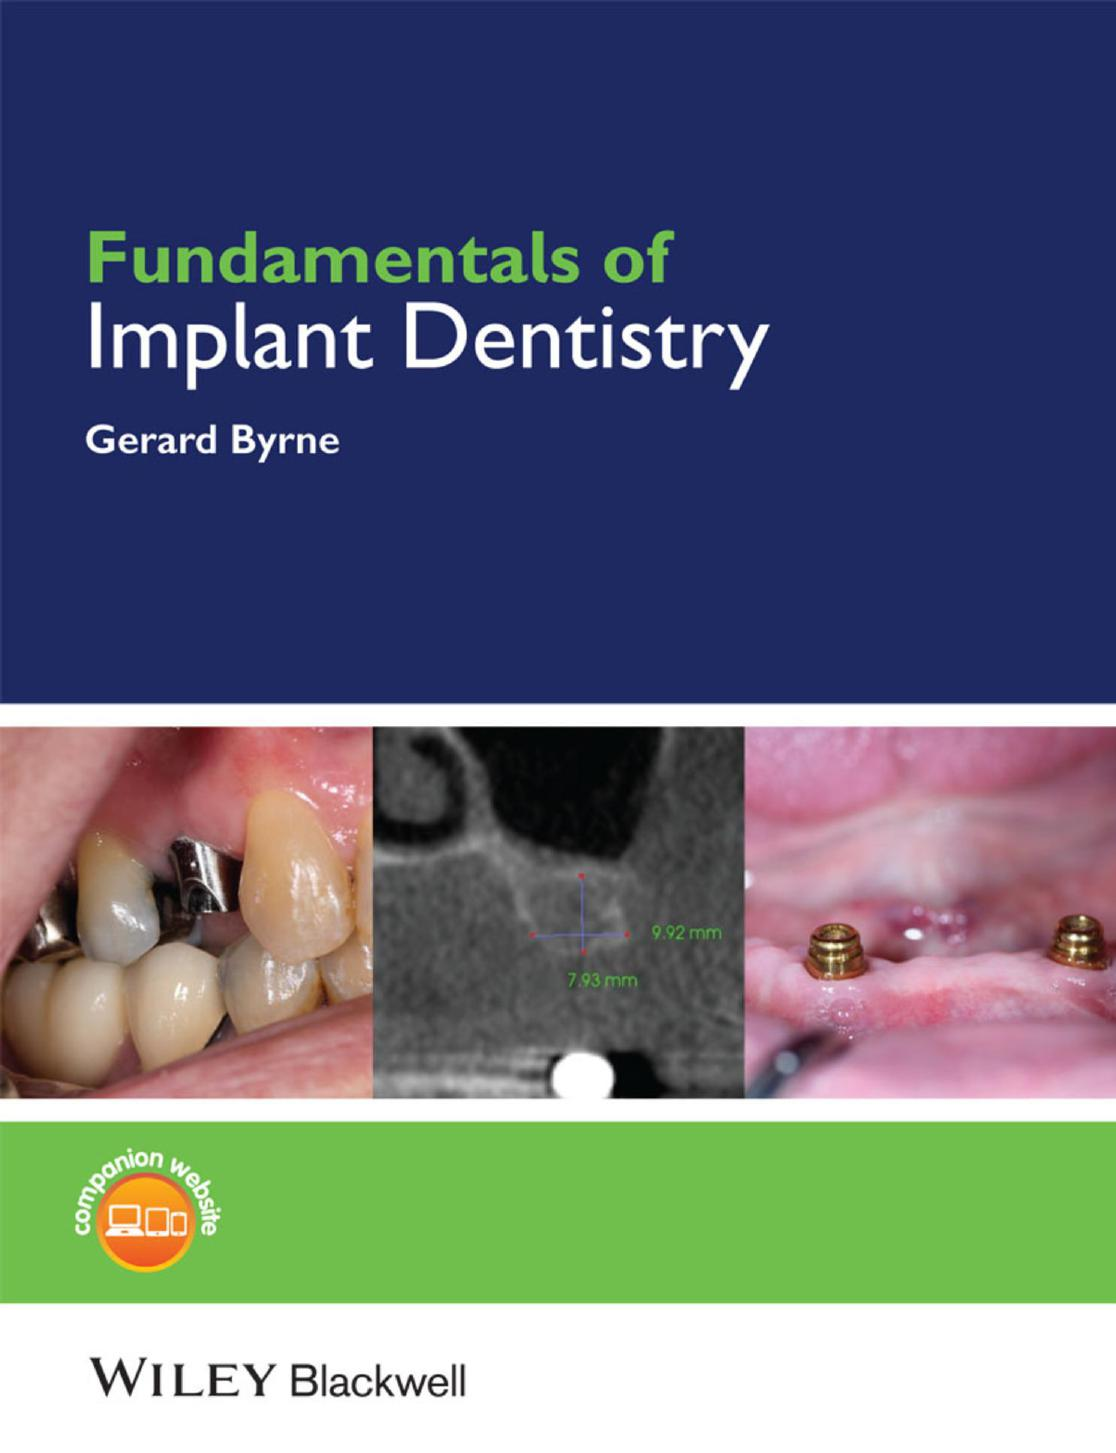 Fundamentals of Implant Dentistry Prosthodontic Principles PDF